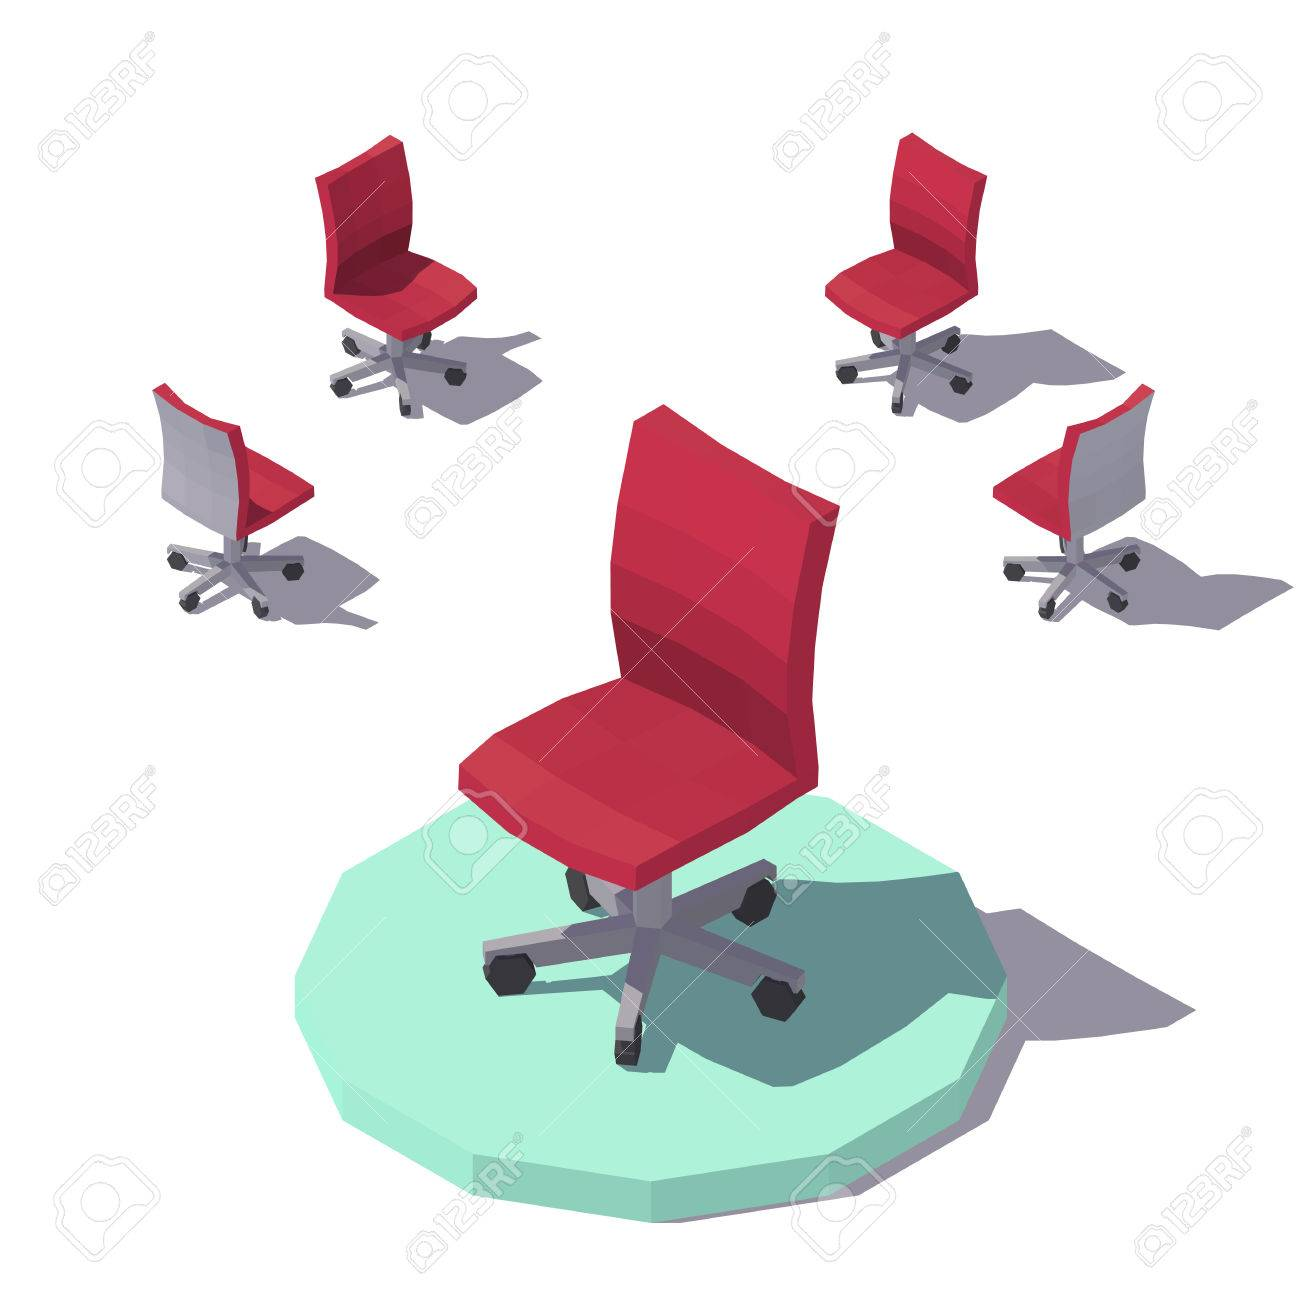 Red Desk Chair Vector Isometric Low Poly Red Office Chair Vector Flat Illustration